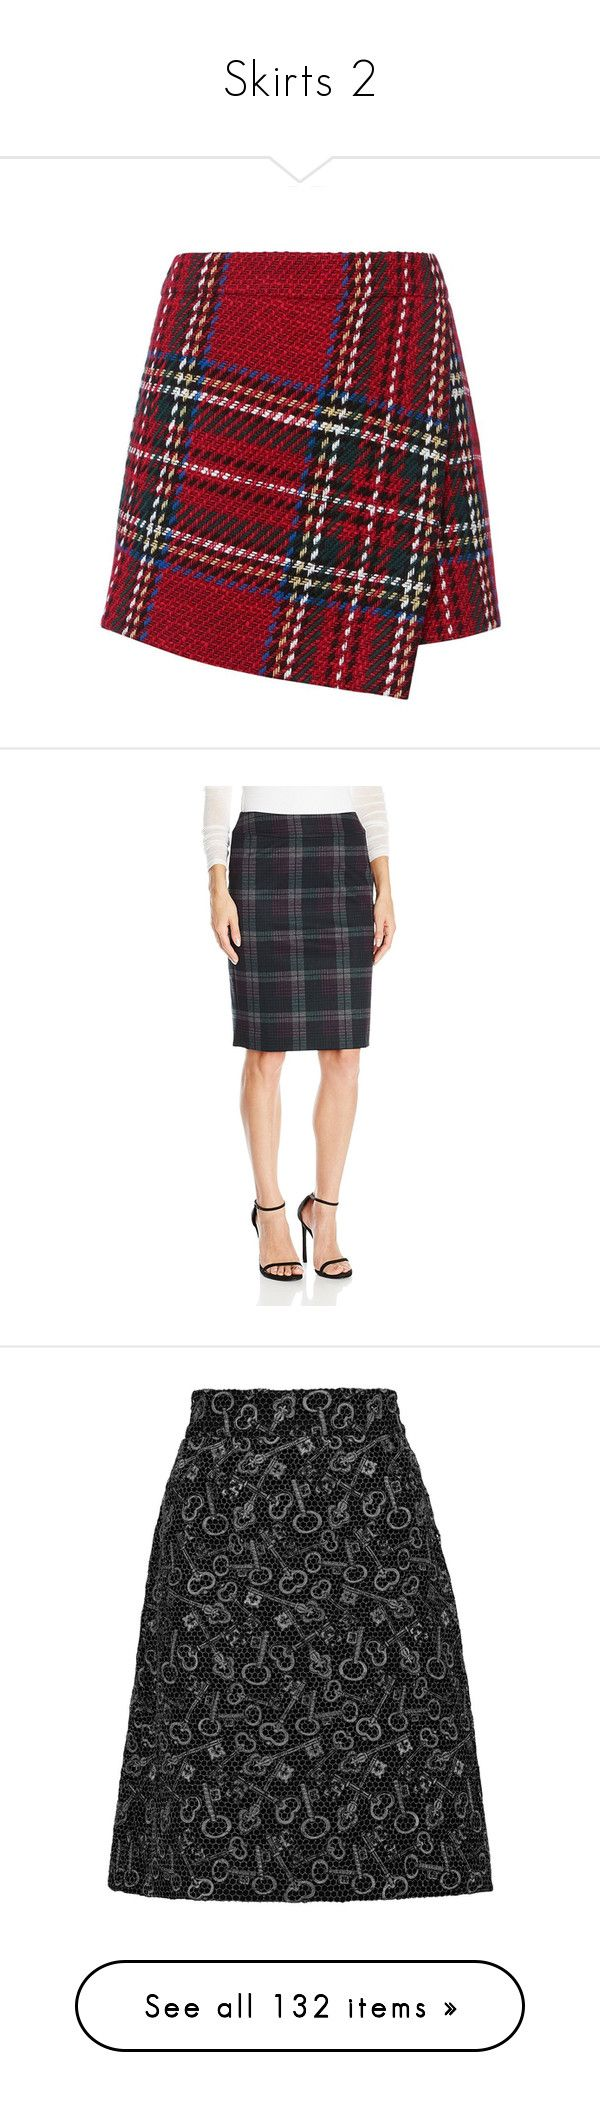 """""""Skirts 2"""" by noneedforfear ❤ liked on Polyvore featuring skirts, mini skirts, bottoms, red plaid mini skirt, plaid skort, red tartan mini skirt, pocket skirt, golf skirts, nine west skirts and nine west"""